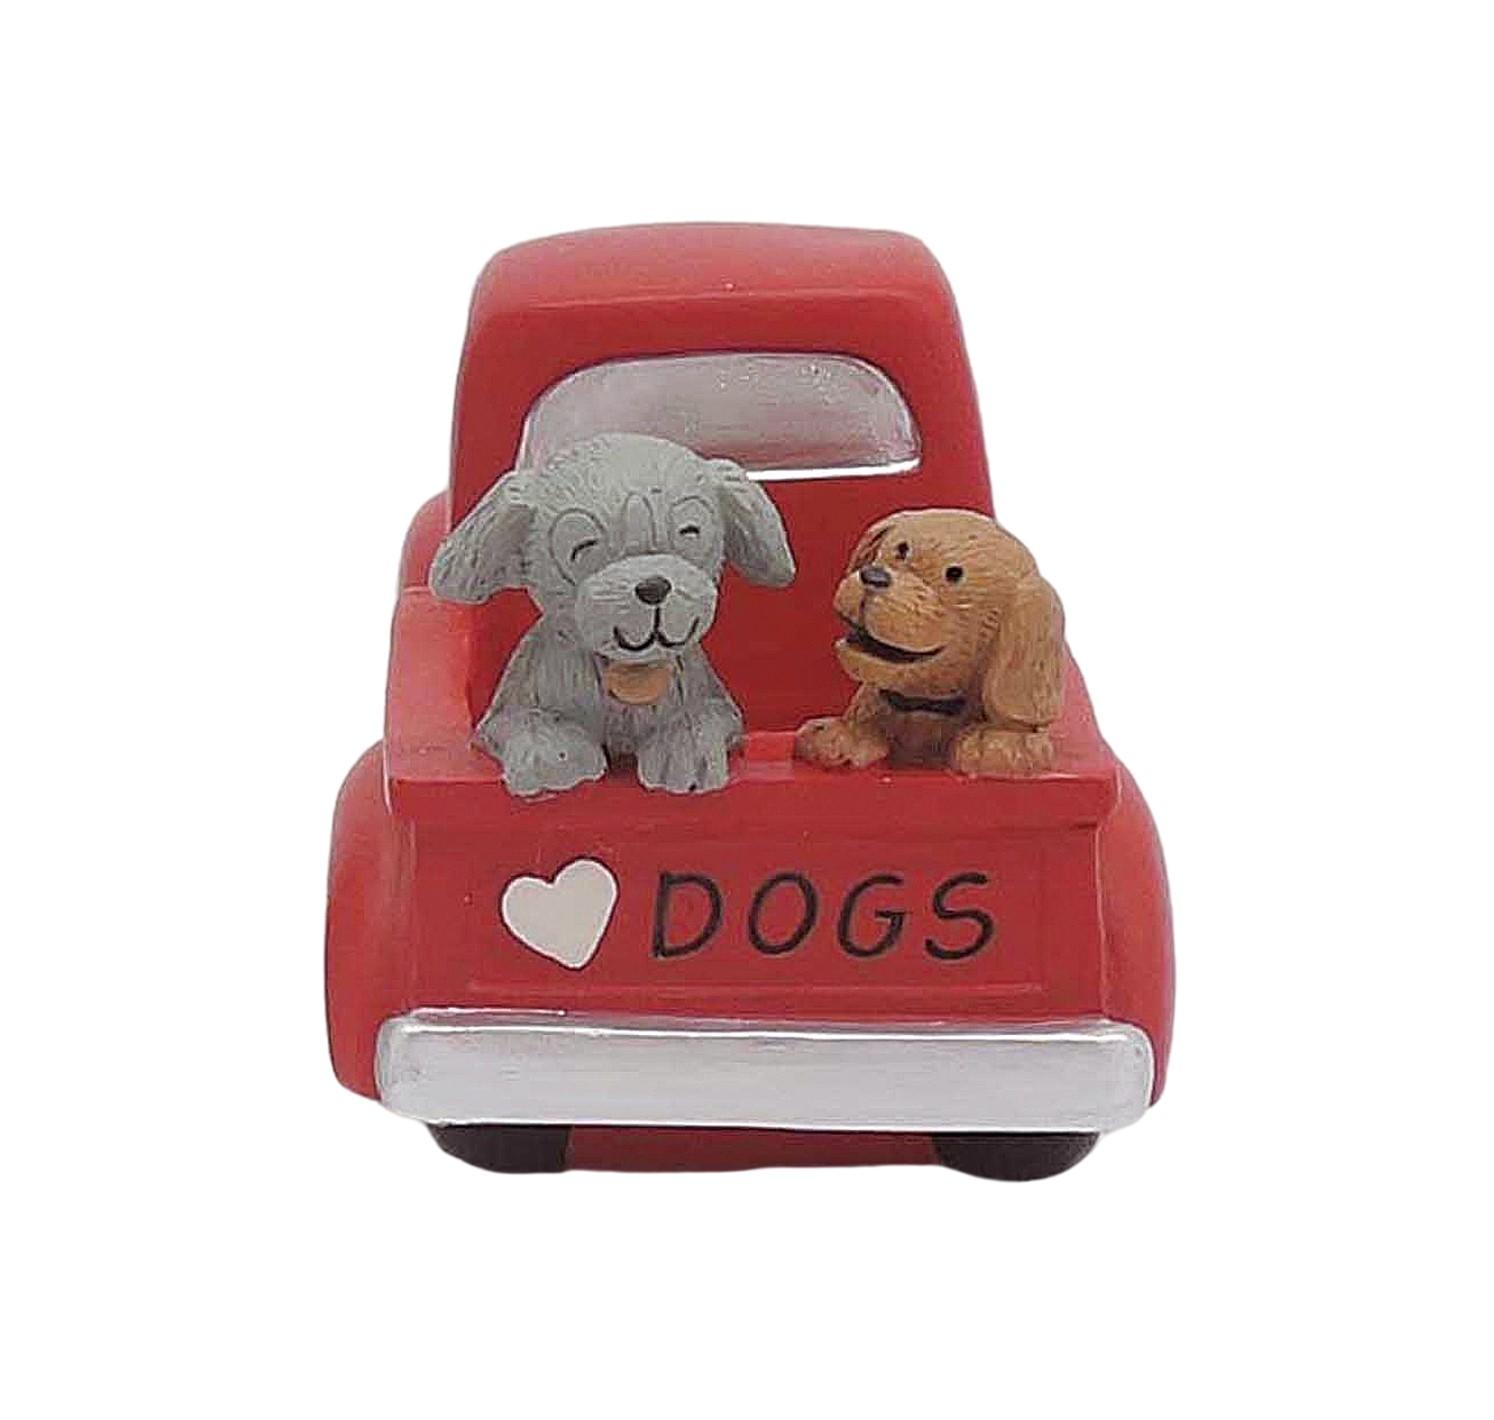 Hot Sale Two Lovely Dogs On The Back of Red 'DOGS' Pickup Truck Resin Decoration 2166-13336